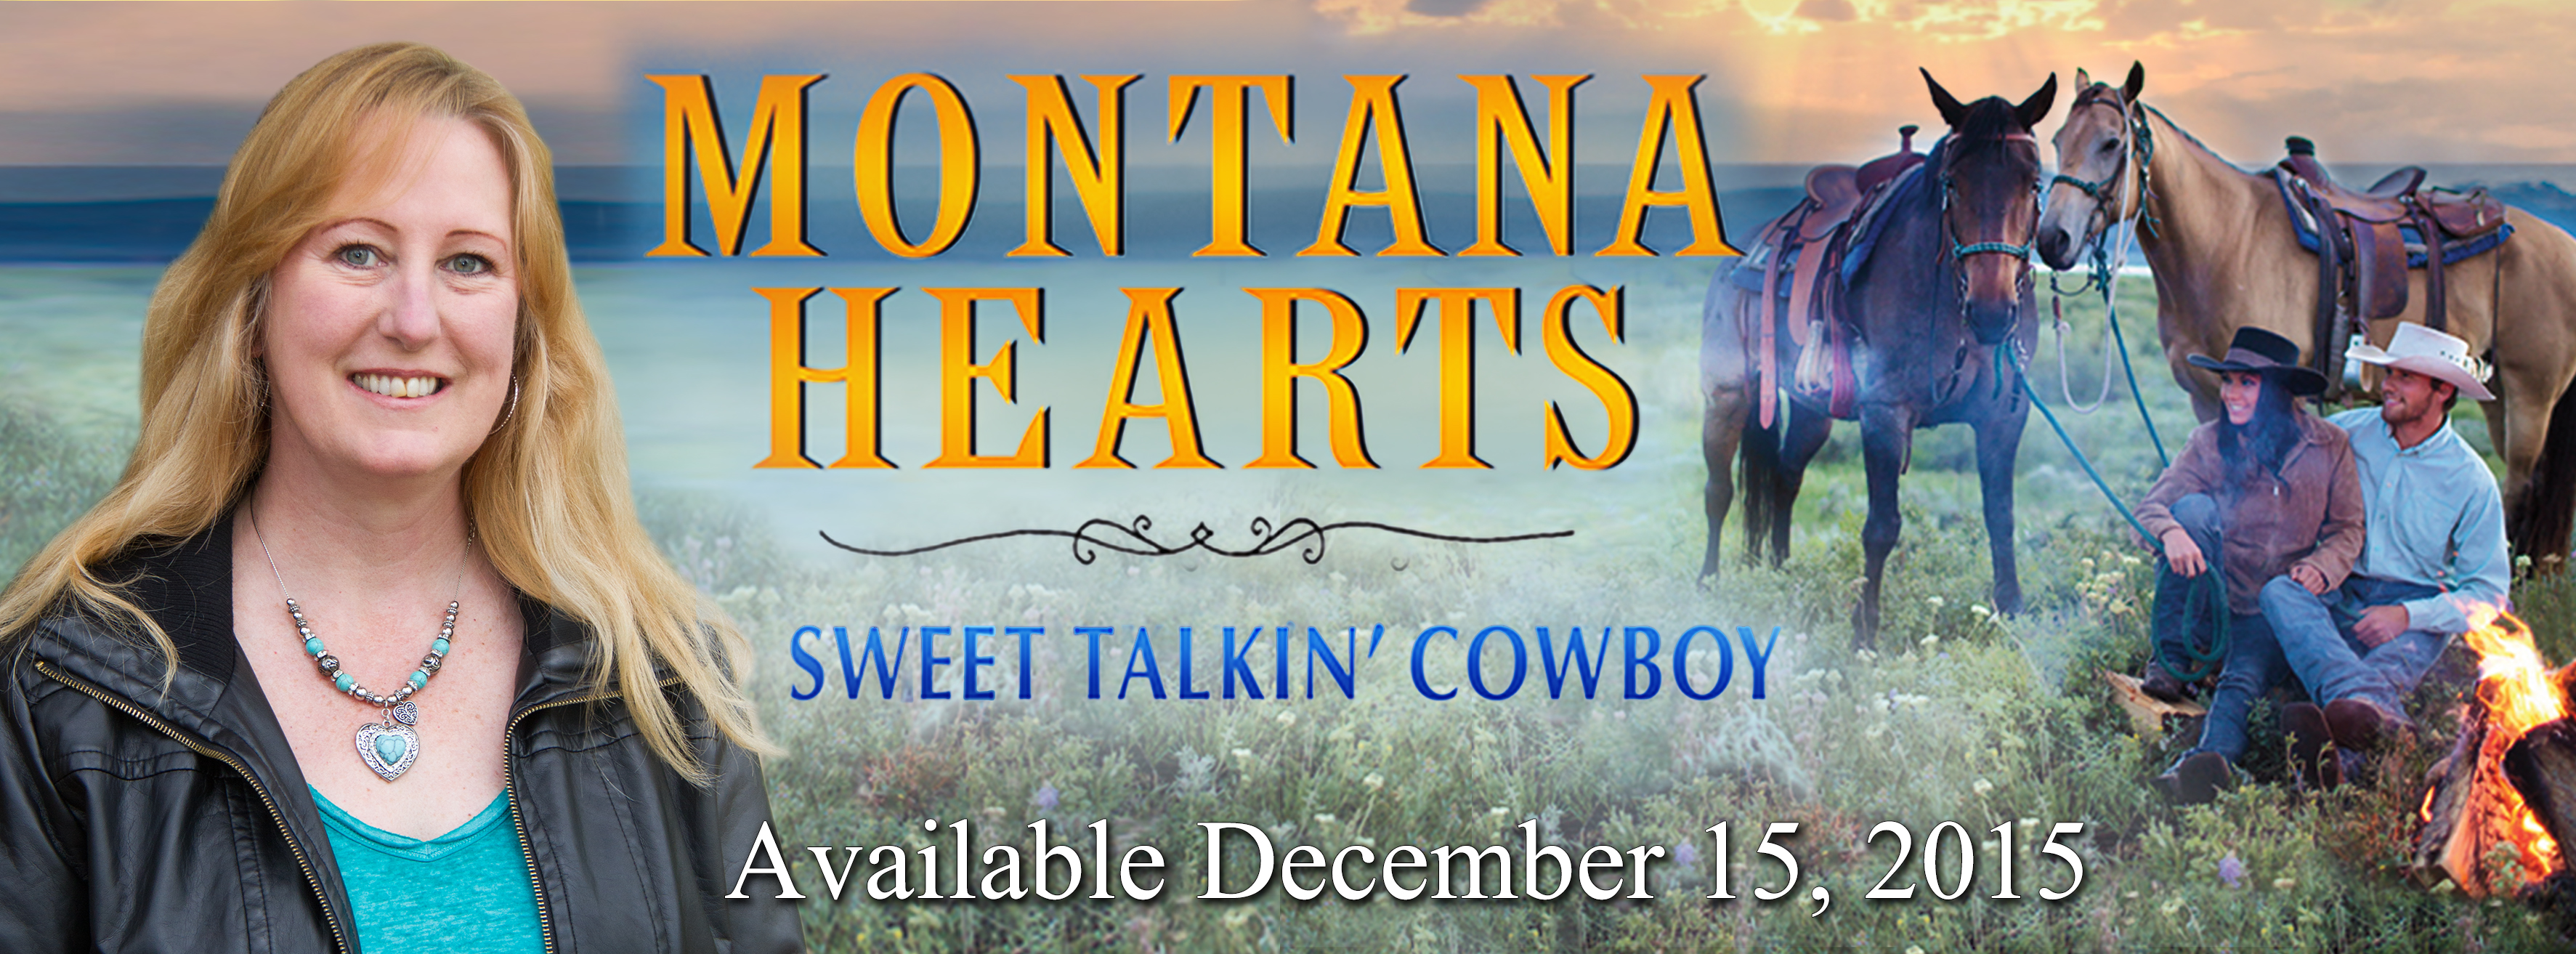 Sweet-Talking-Cowboy-Banner-Possibility